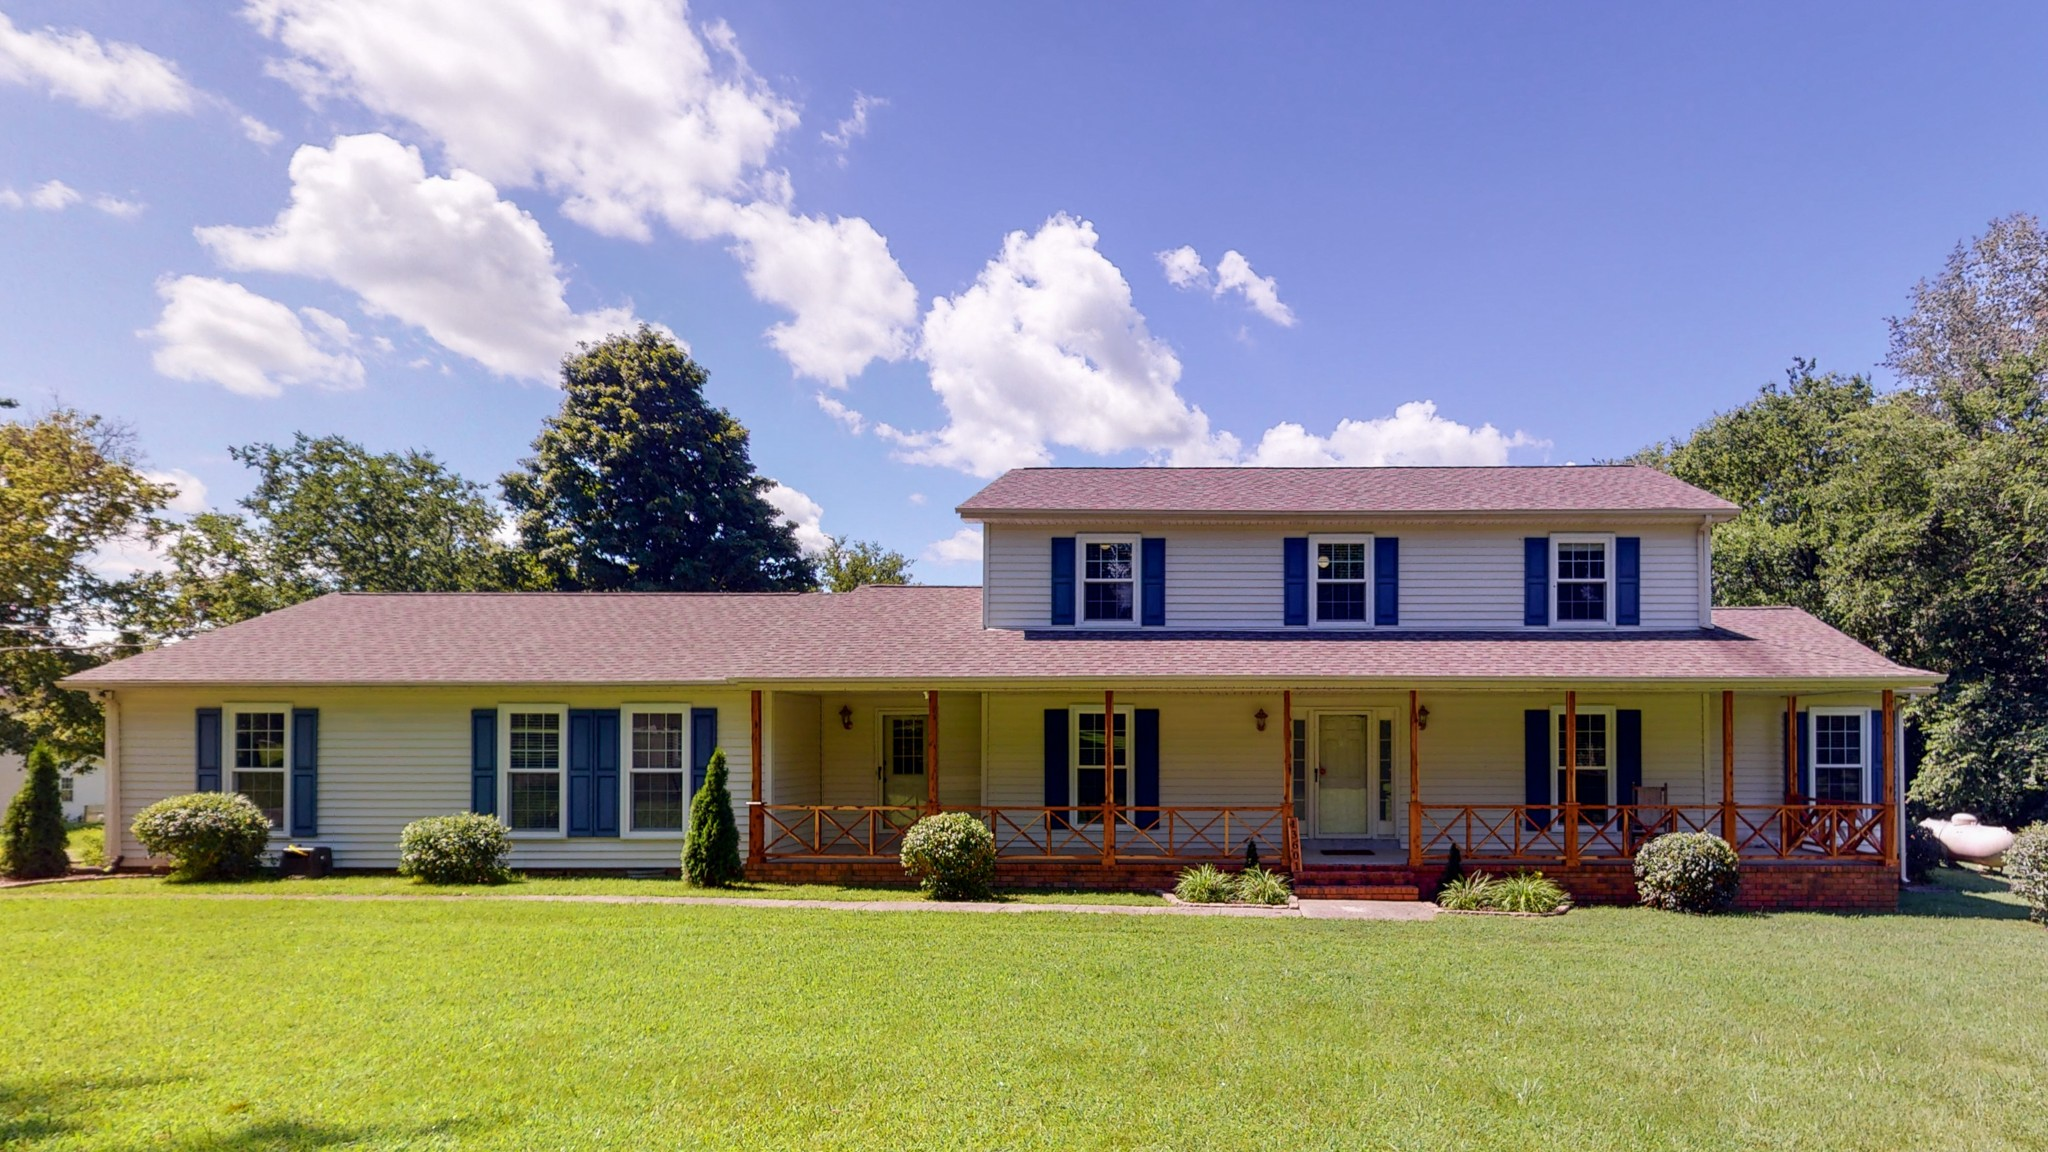 13601 Old Hickory Blvd Property Photo - Antioch, TN real estate listing